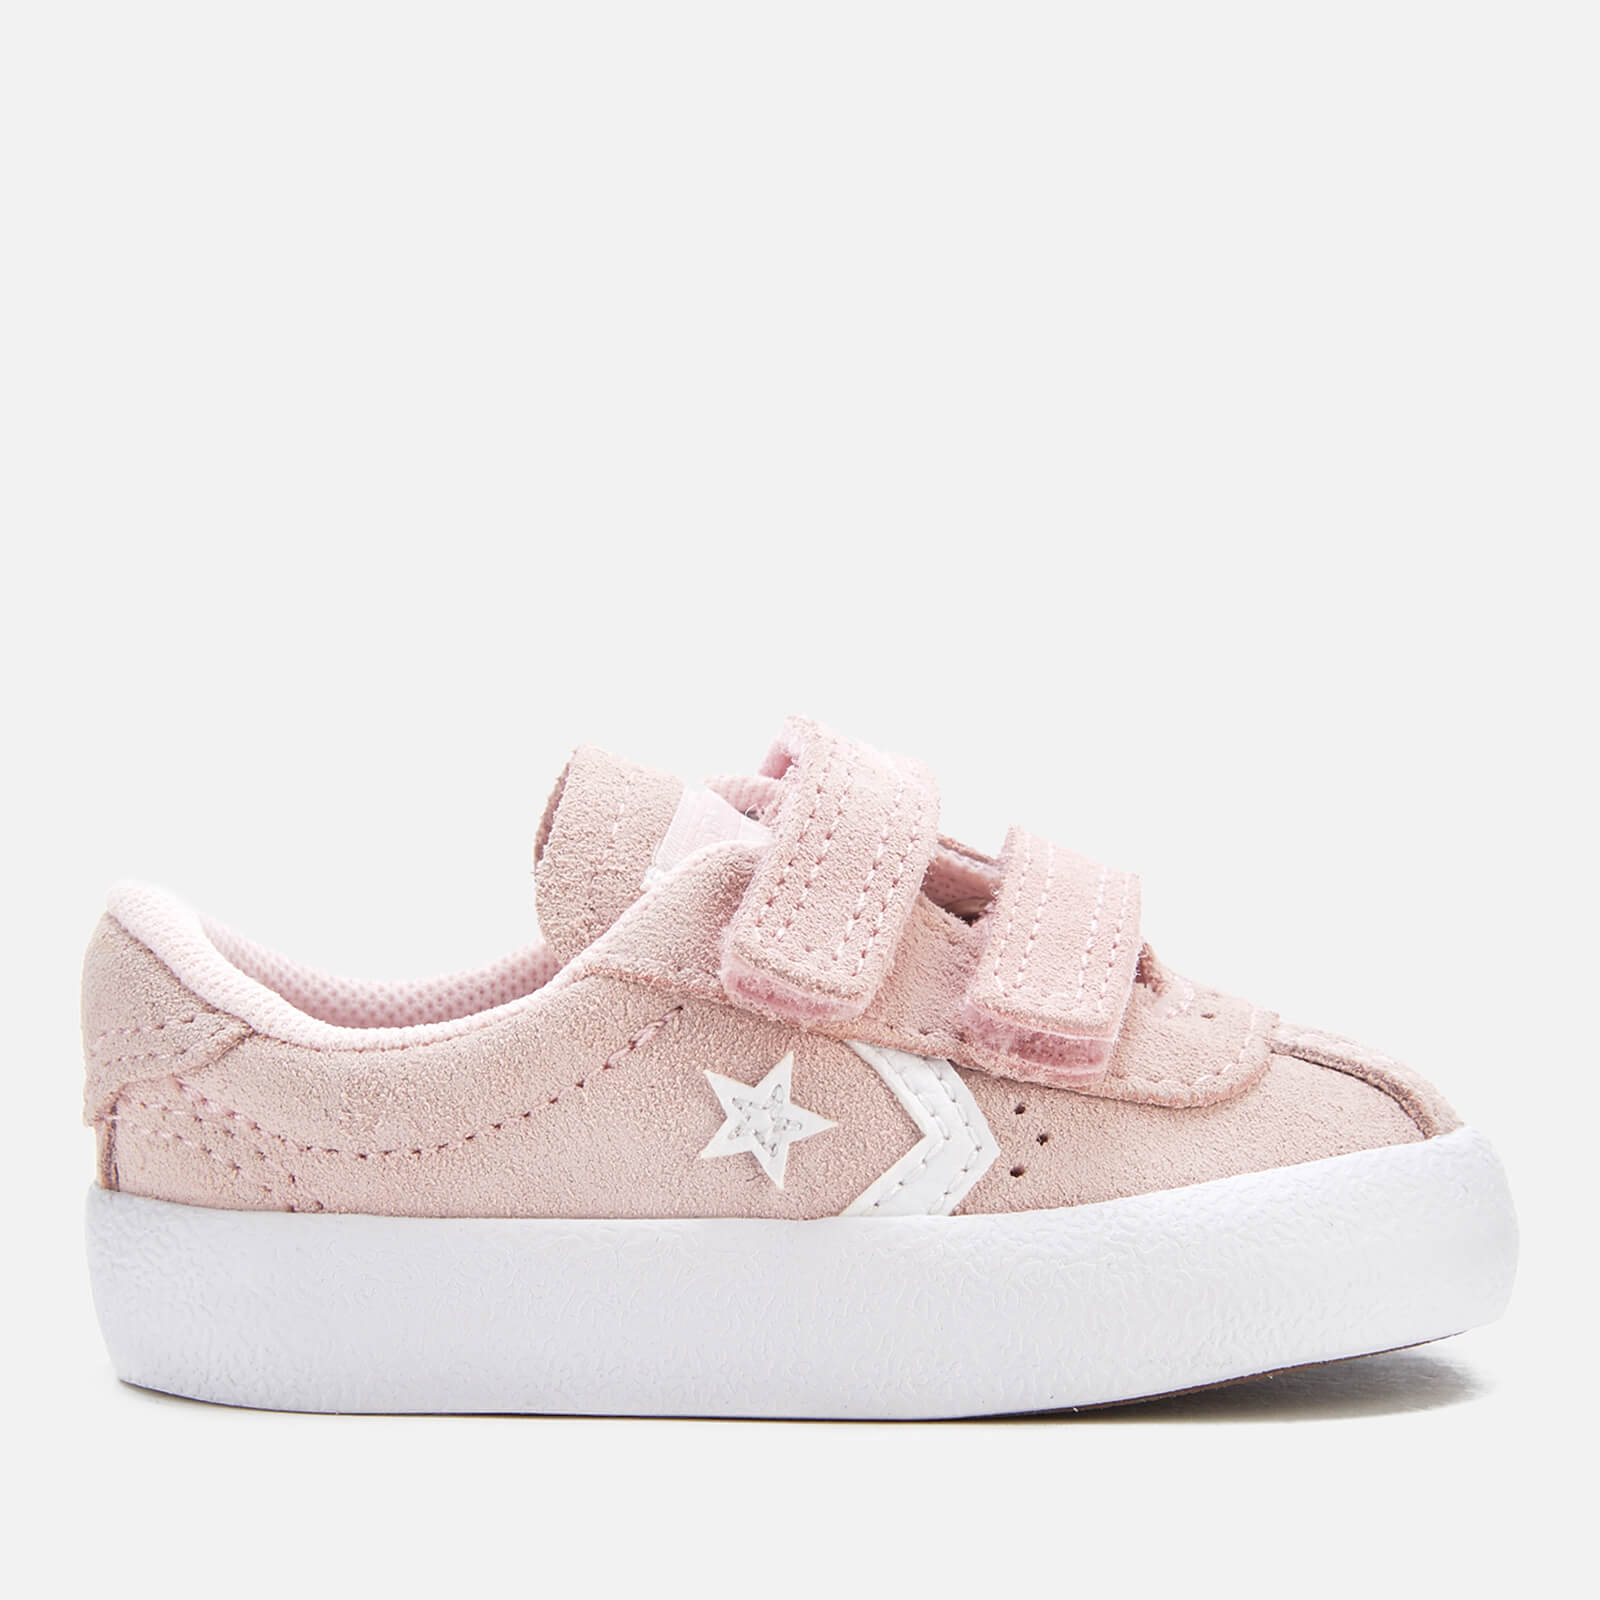 edeef0933d Converse Toddlers' Breakpoint 2V Suede Ox Trainers - Arctic Pink/Arctic  Pink/White